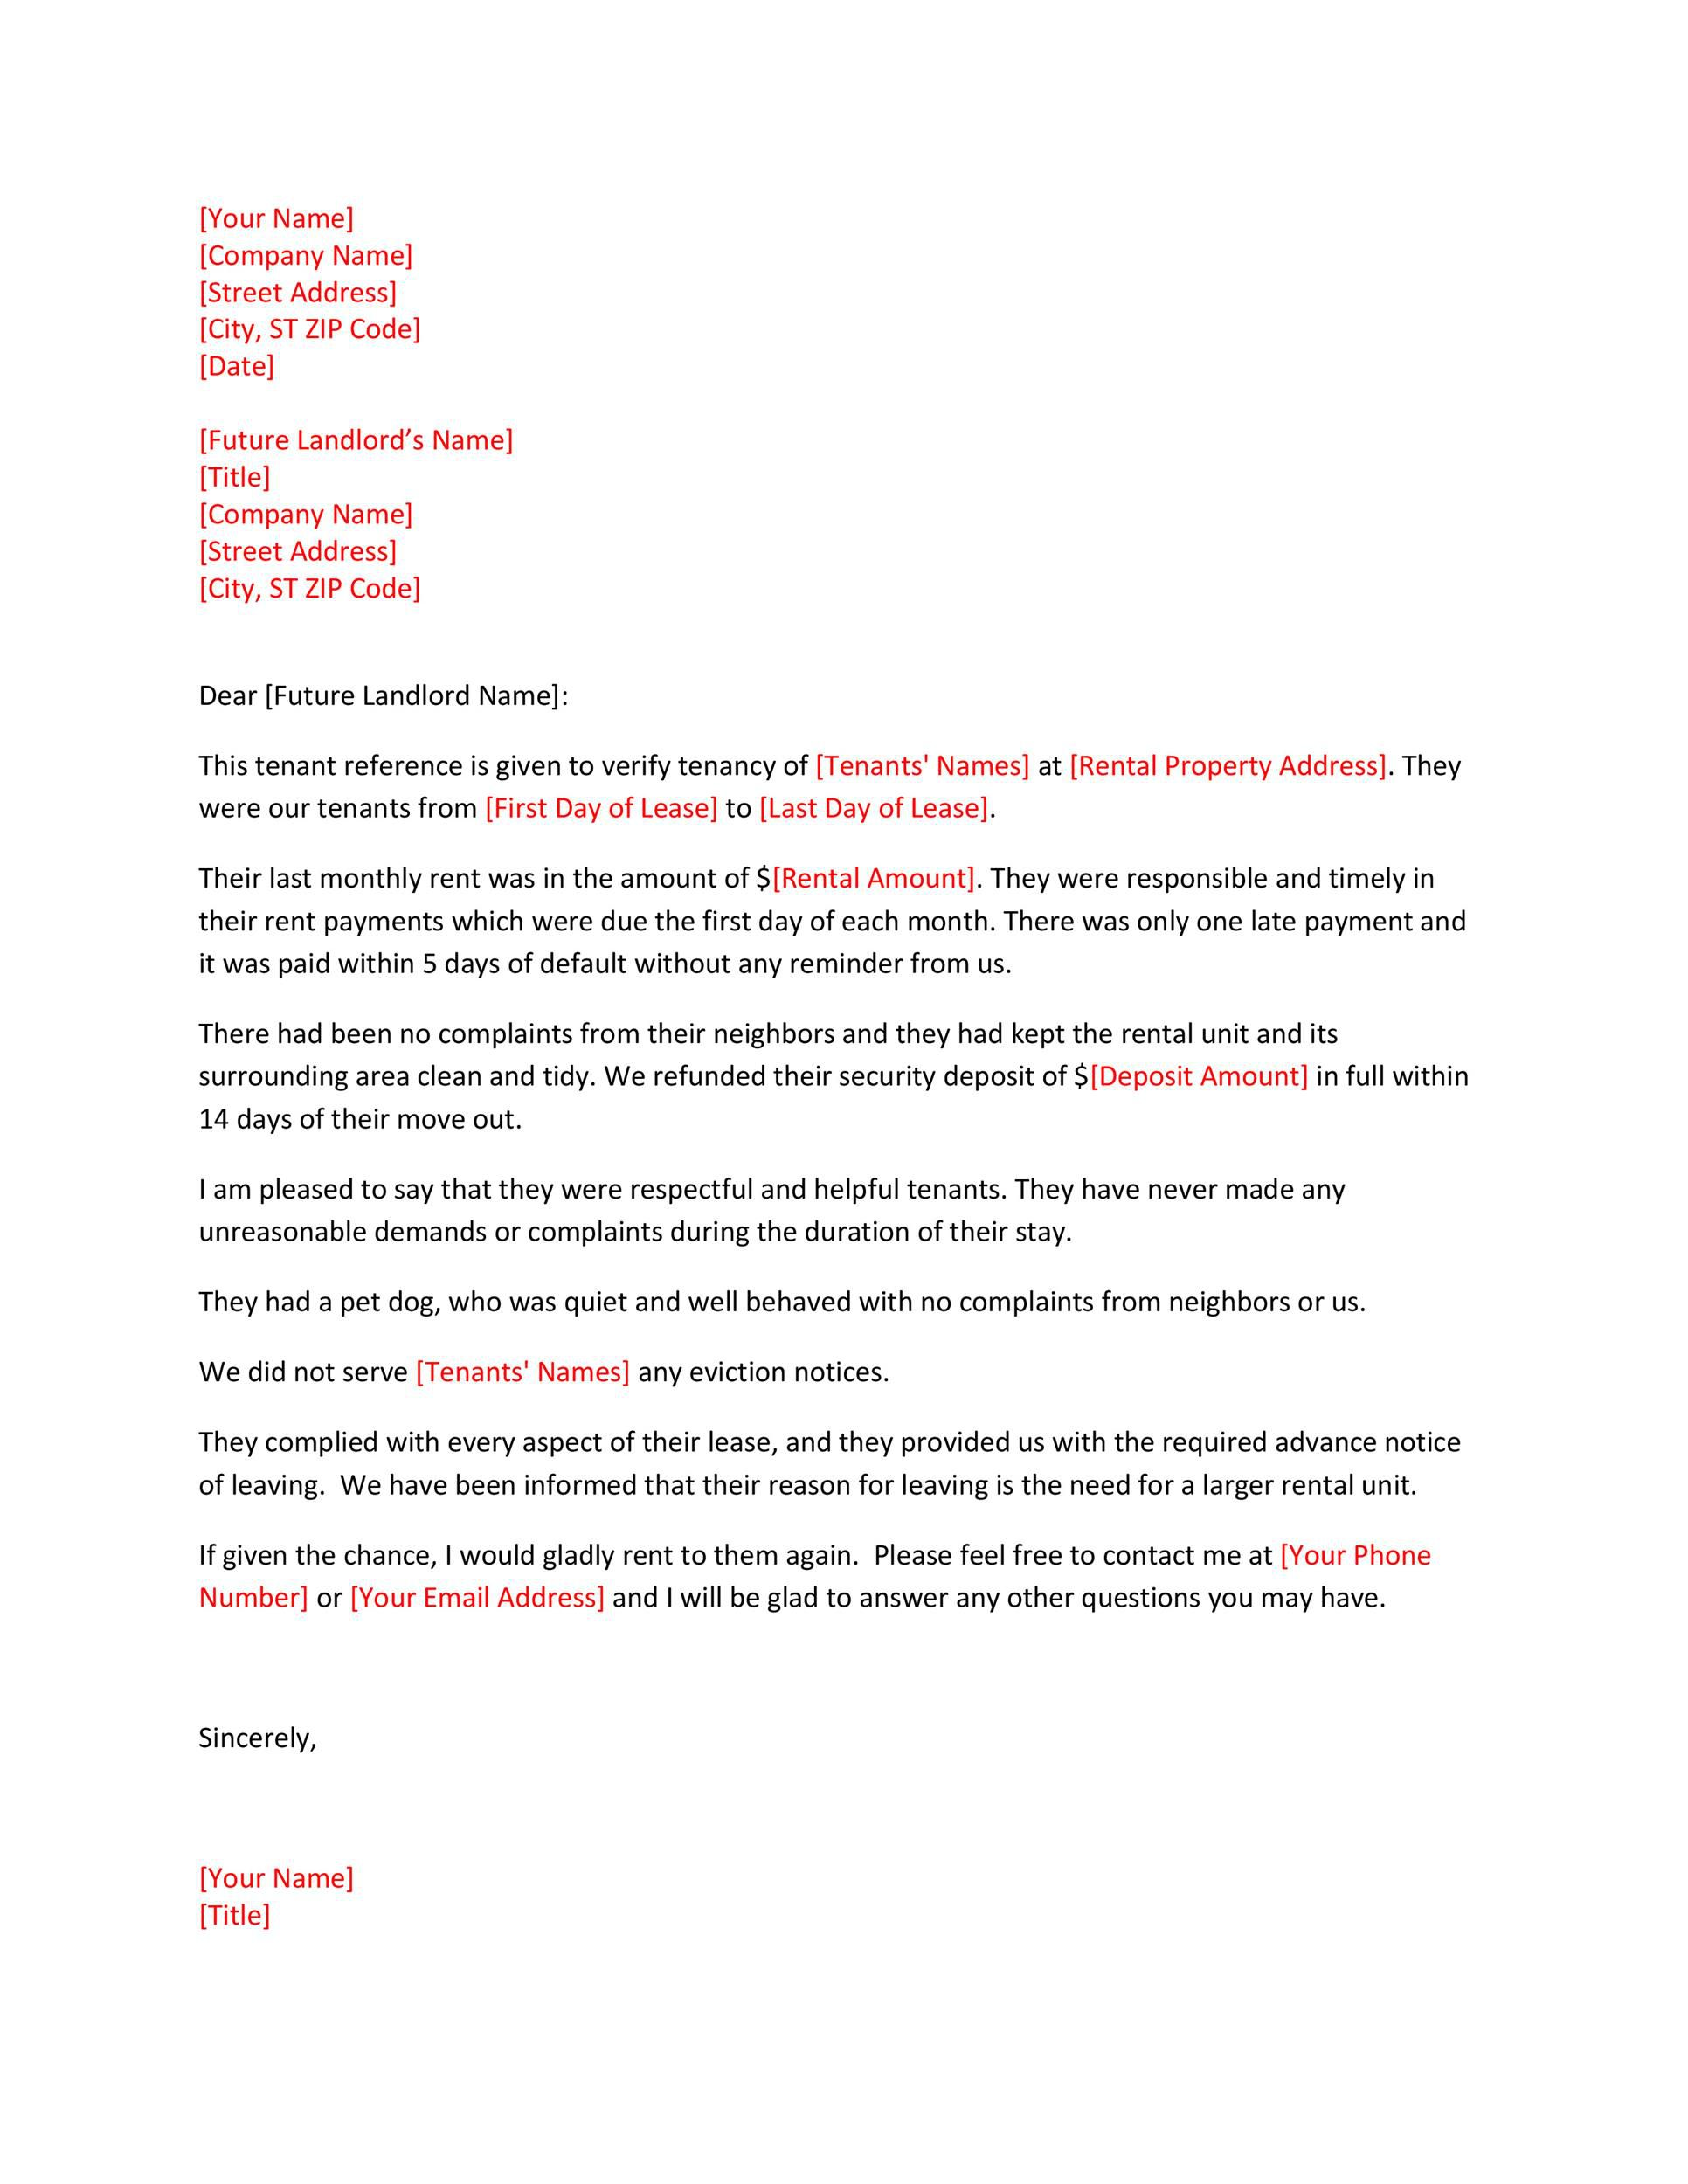 002 Unusual Free Reference Letter Template For Landlord High Def  Rental